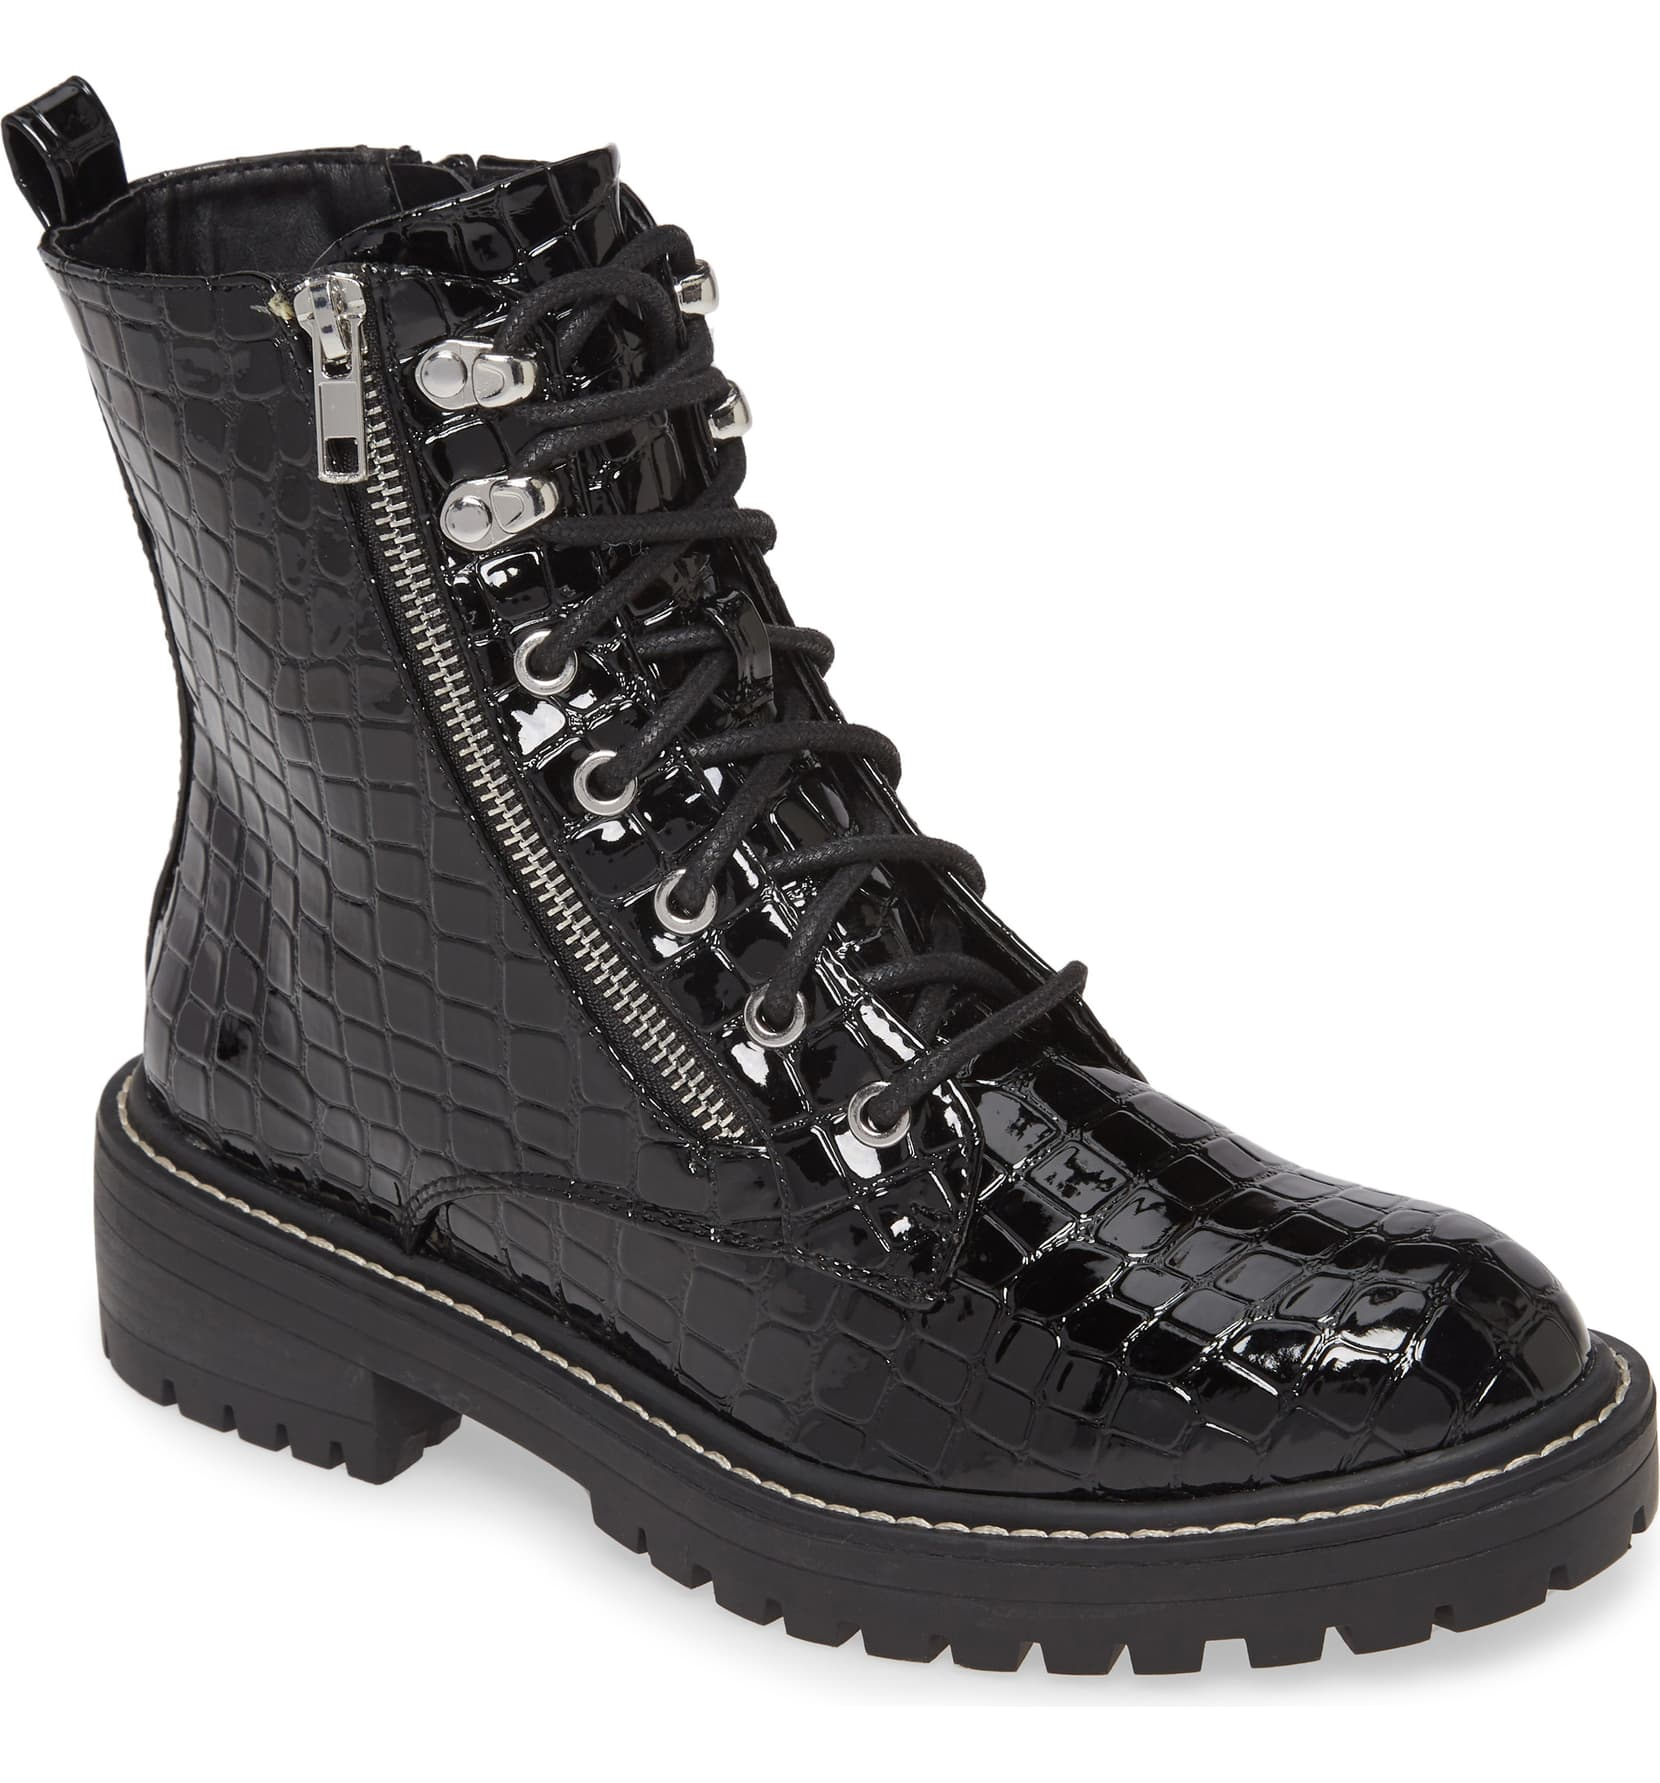 "<p>A glossy finish highlights the allover croc embossing of this rocker-chic lace-up boot. <a  href=""https://shop.nordstrom.com/s/topshop-kiki-combat-boot-women/5501270/full?origin=category-personalizedsort&breadcrumb=Home%2FWomen%2FTopshop%20%26%20Trend&color=black"" target=""_blank"" title=""https://shop.nordstrom.com/s/topshop-kiki-combat-boot-women/5501270/full?origin=category-personalizedsort&breadcrumb=Home%2FWomen%2FTopshop%20%26%20Trend&color=black"">Shop it{&nbsp;}</a>- $80. (Image: Nordstrom){&nbsp;}</p>"